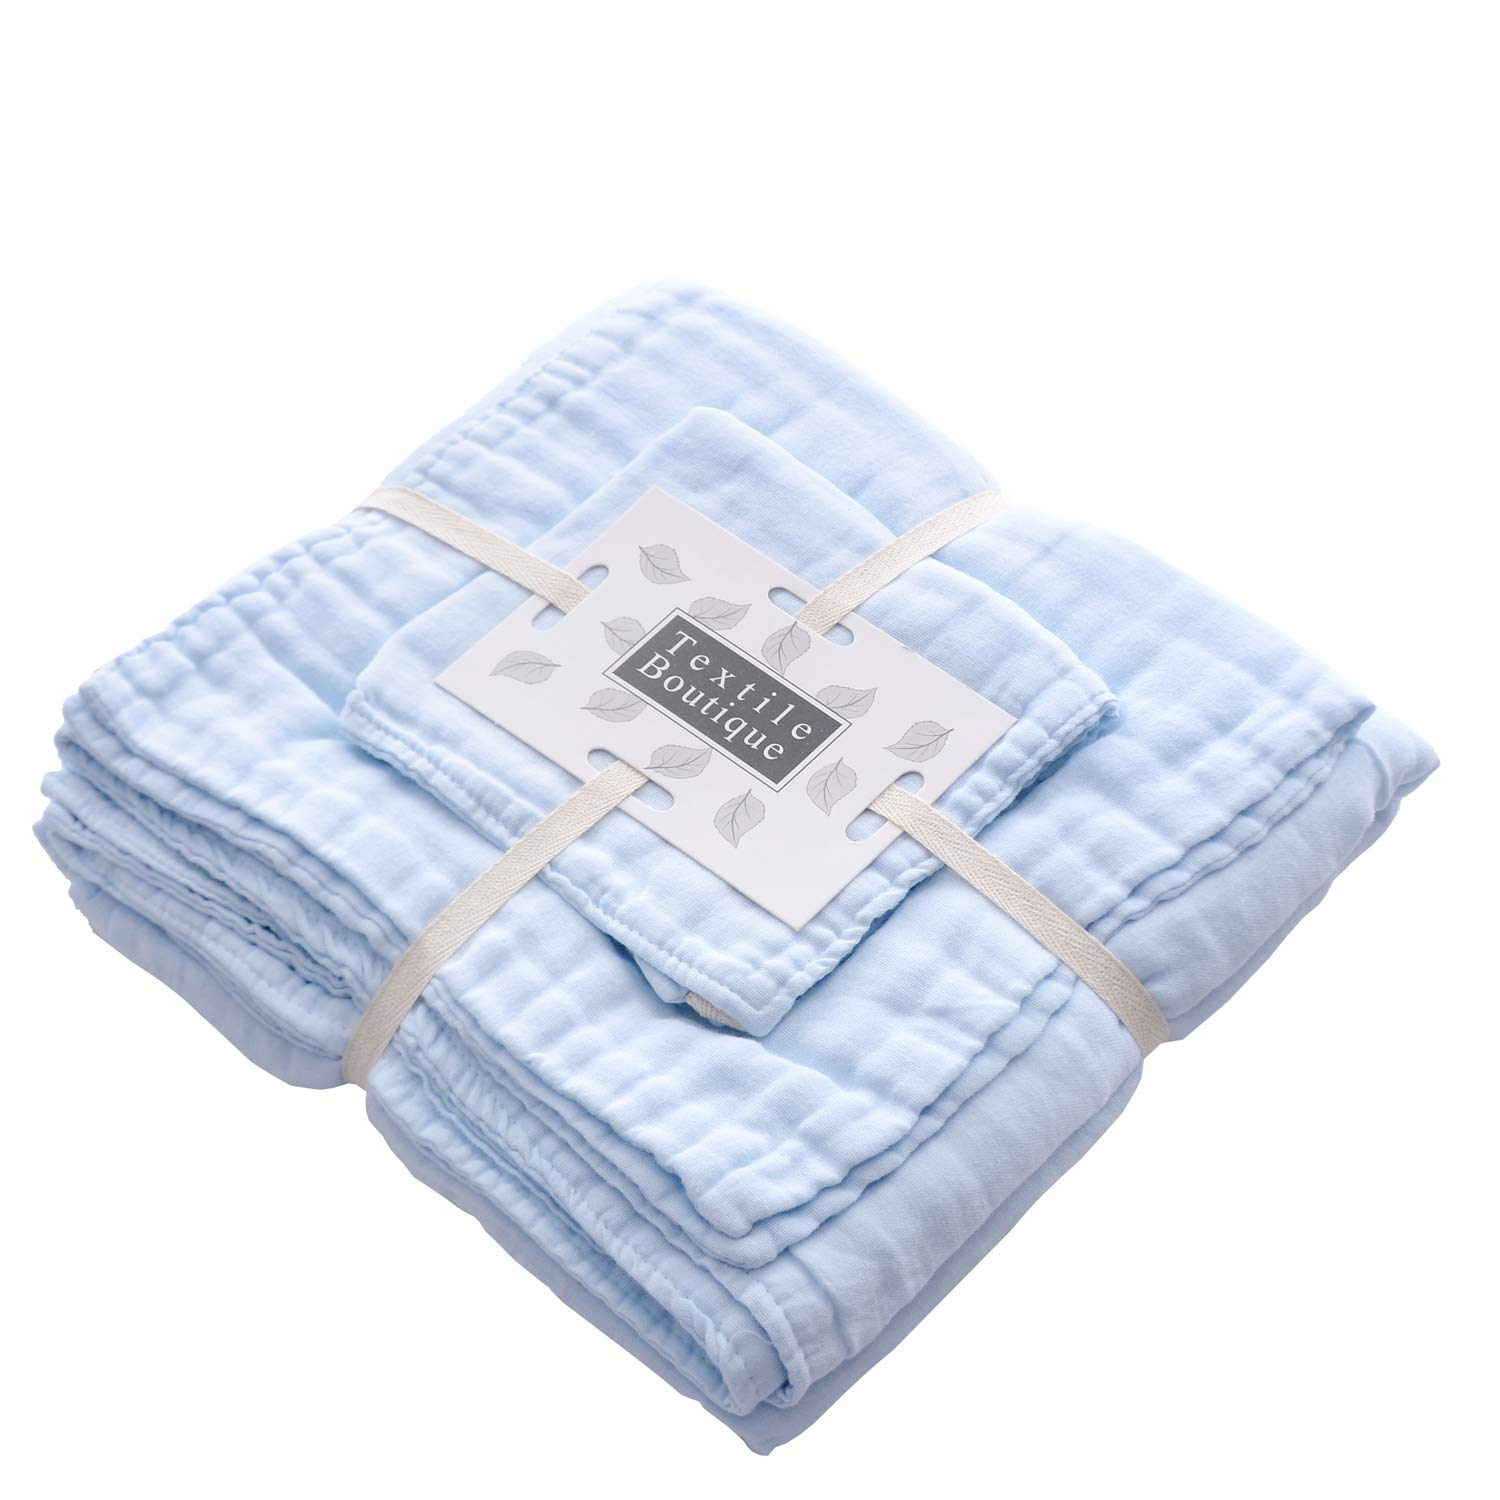 Baby Bath Towels and Washcloths Set Also for Baby Swaddle Blanket and Baby Muslin Face Cloth, Super Soft Muslin Cotton - Ideal for Baby Care Gift Sets by MUKIN((3 PC Value Pack) Blue